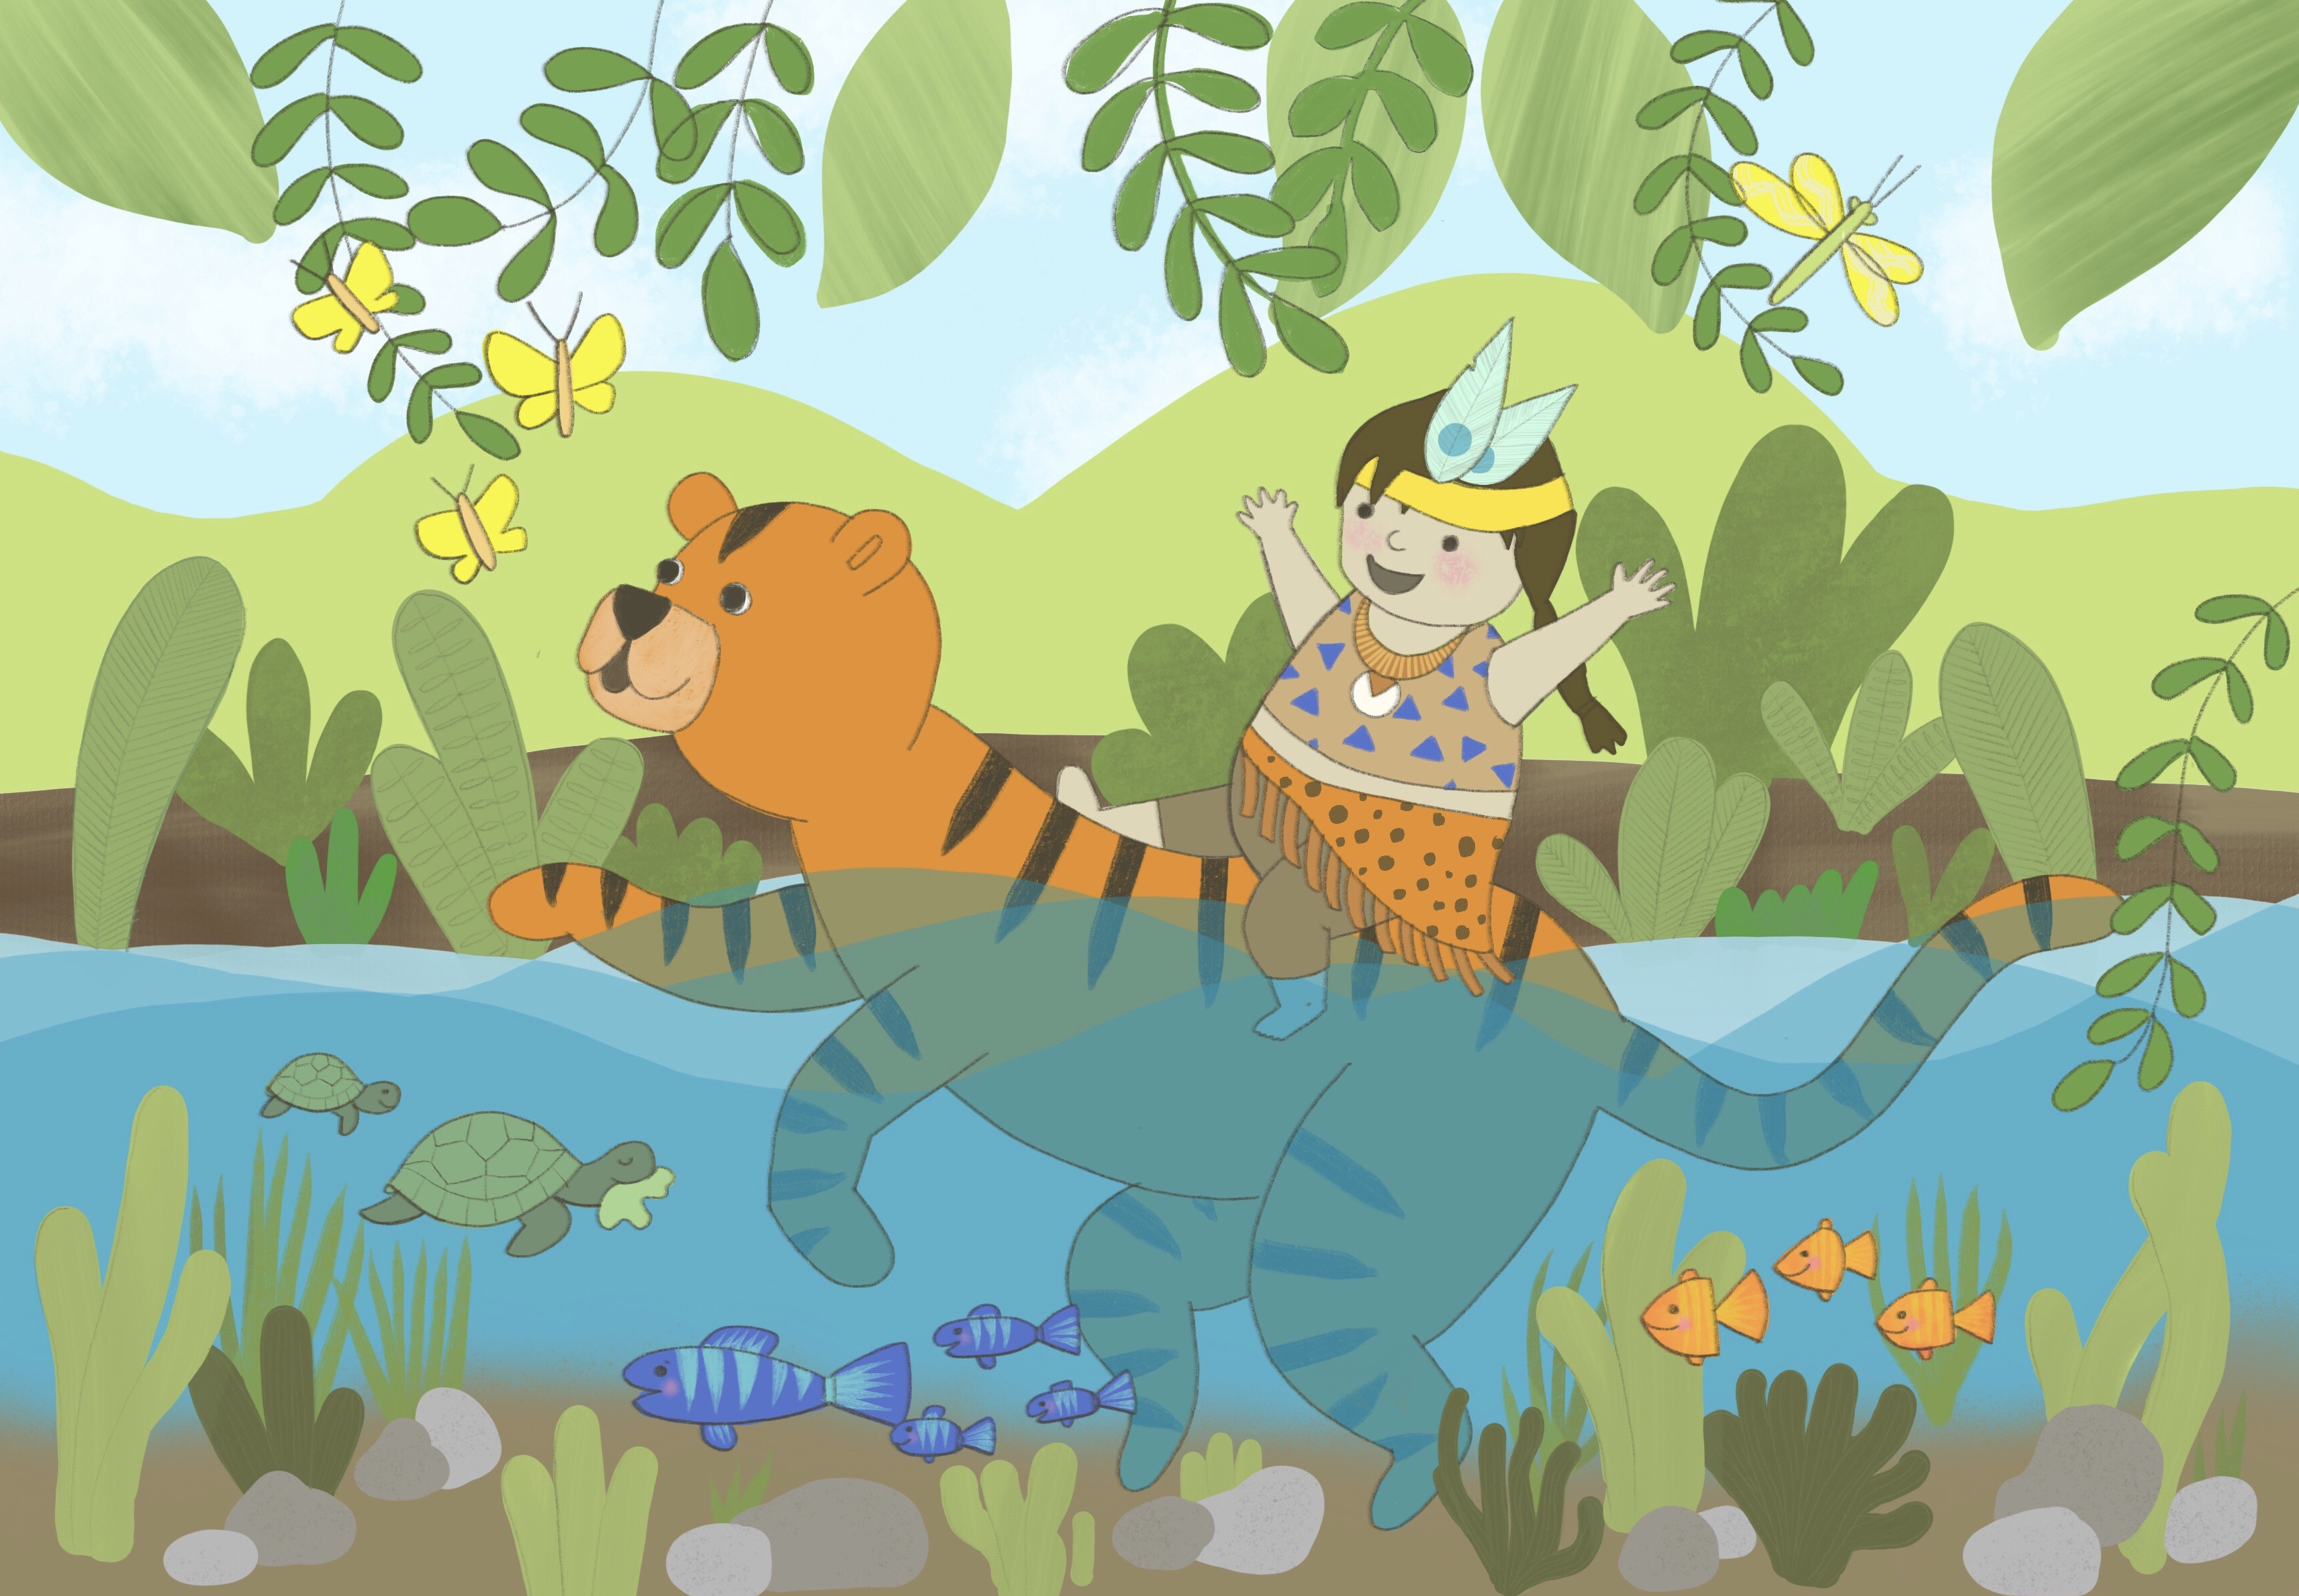 Jungle fun Illustration by Amie Sabadin